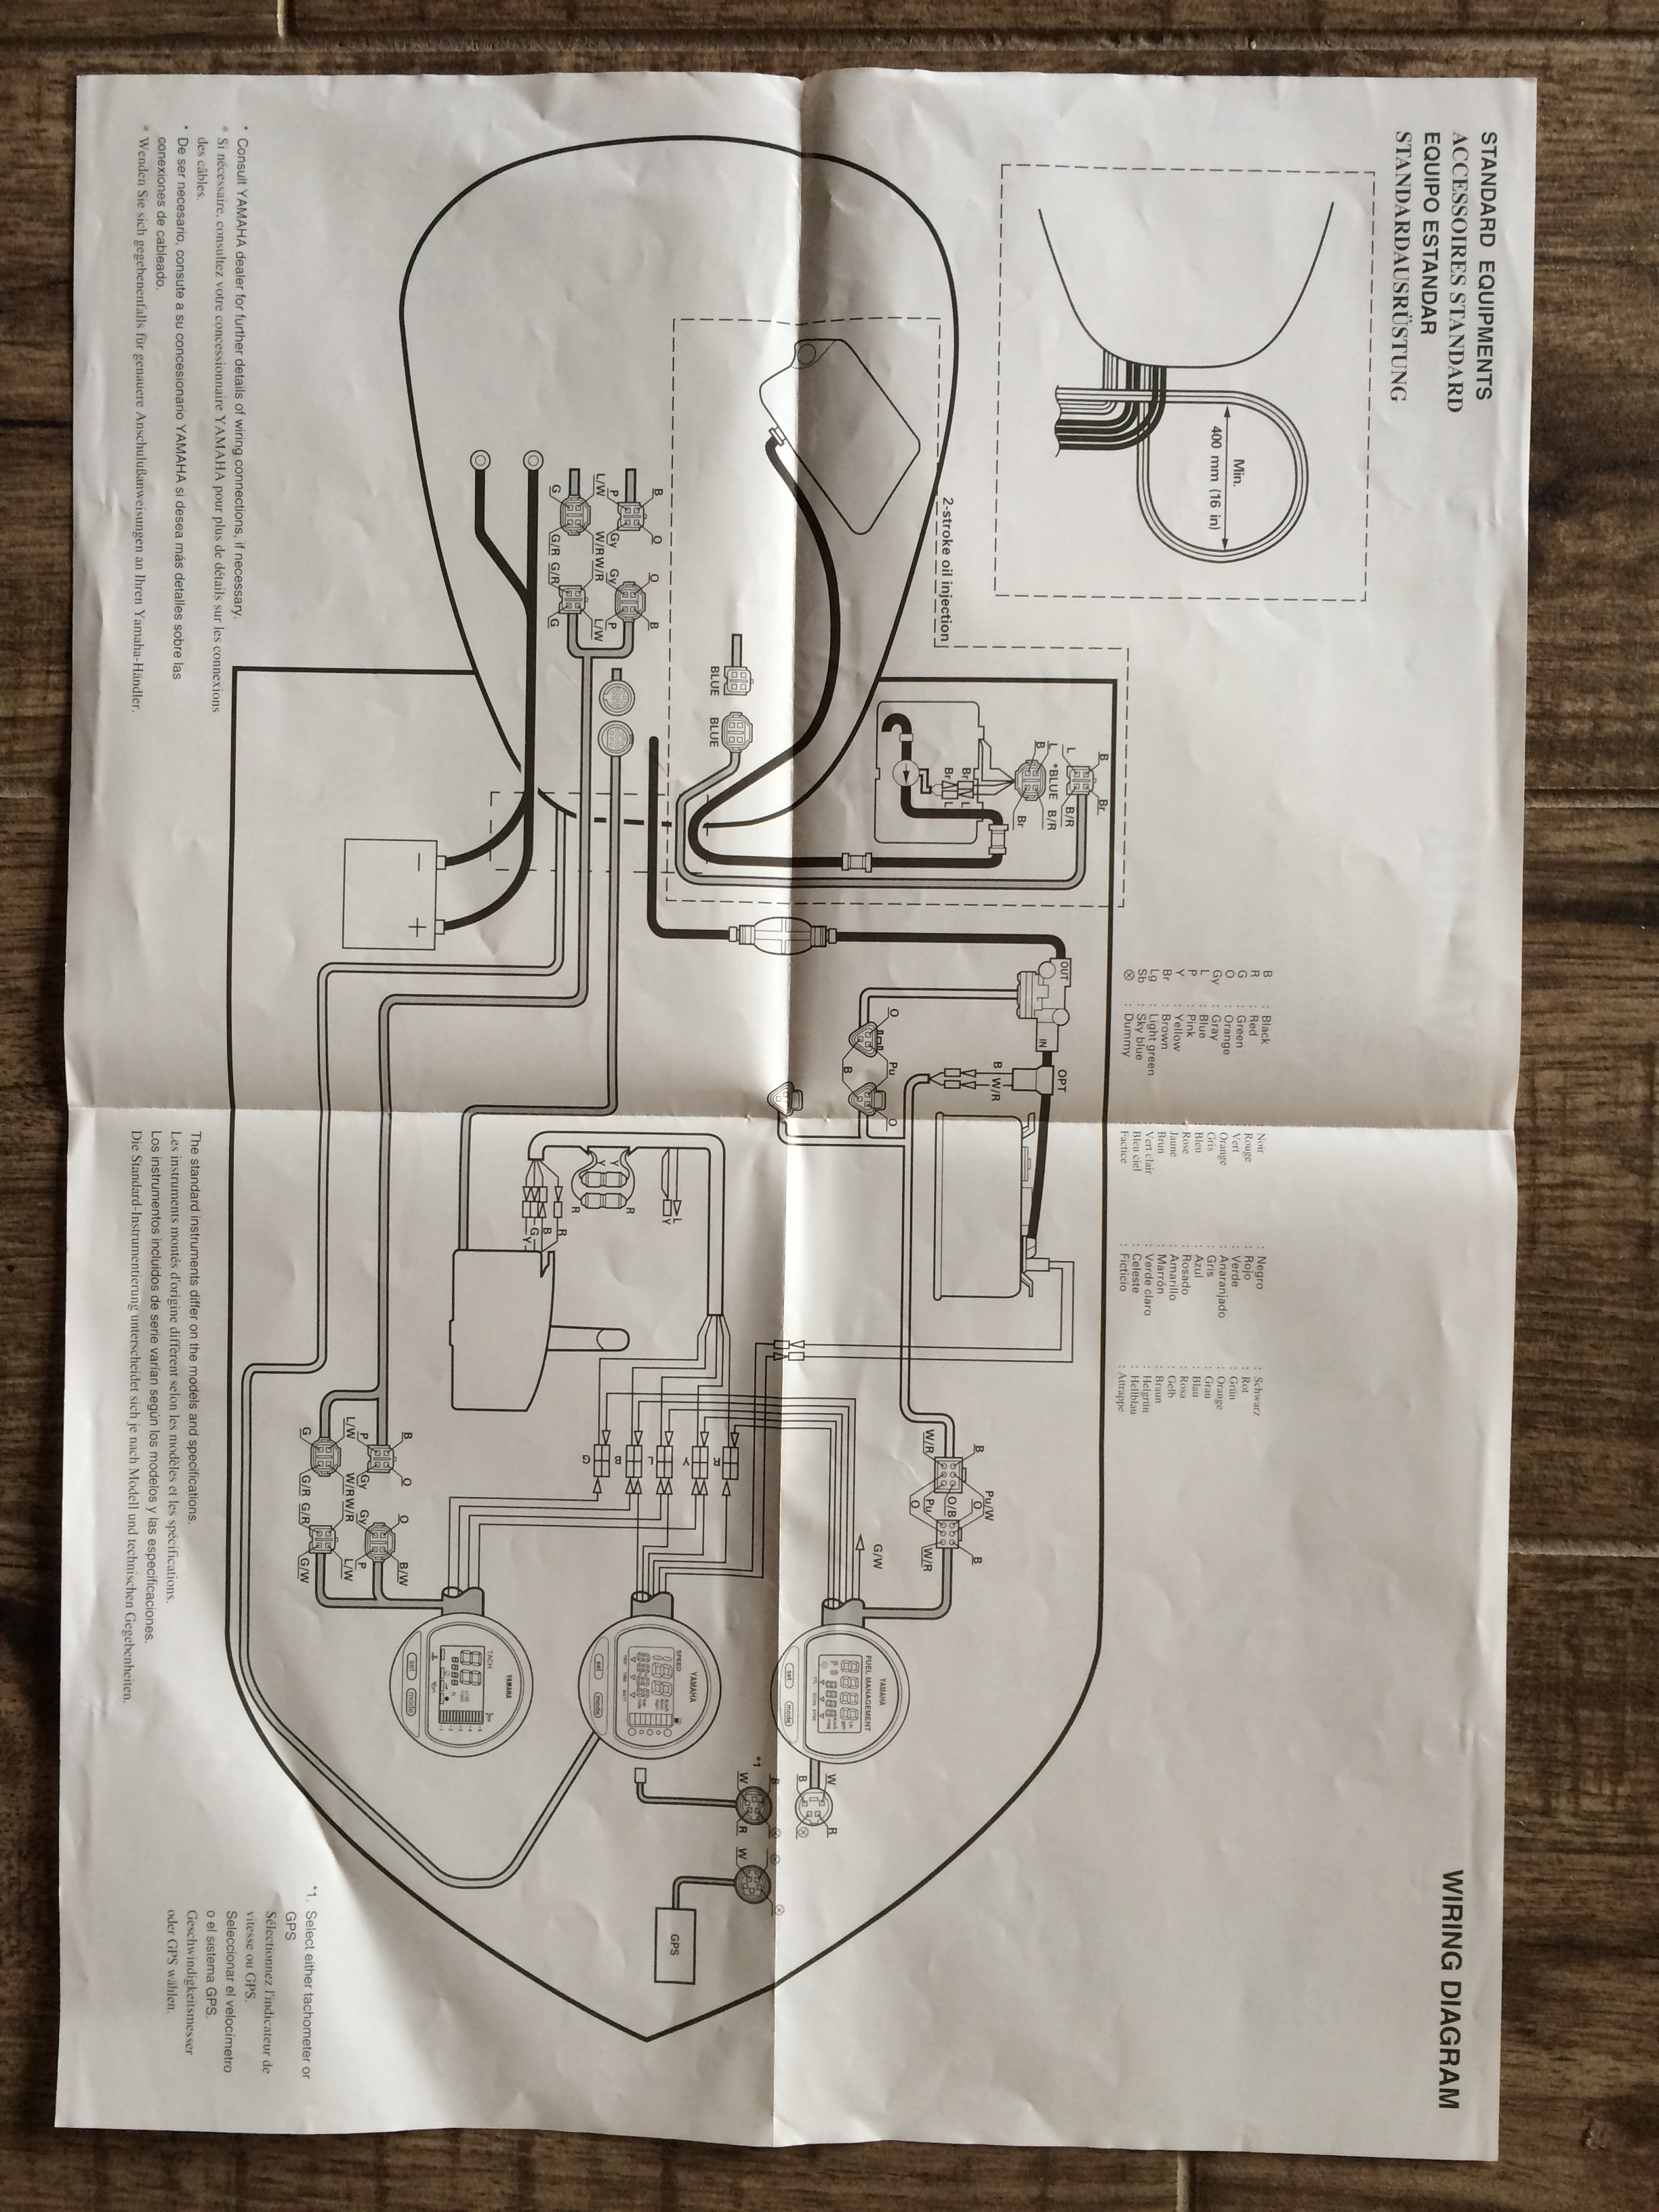 Electrical Wiring Diagrams For A Fd Gs 201 Does